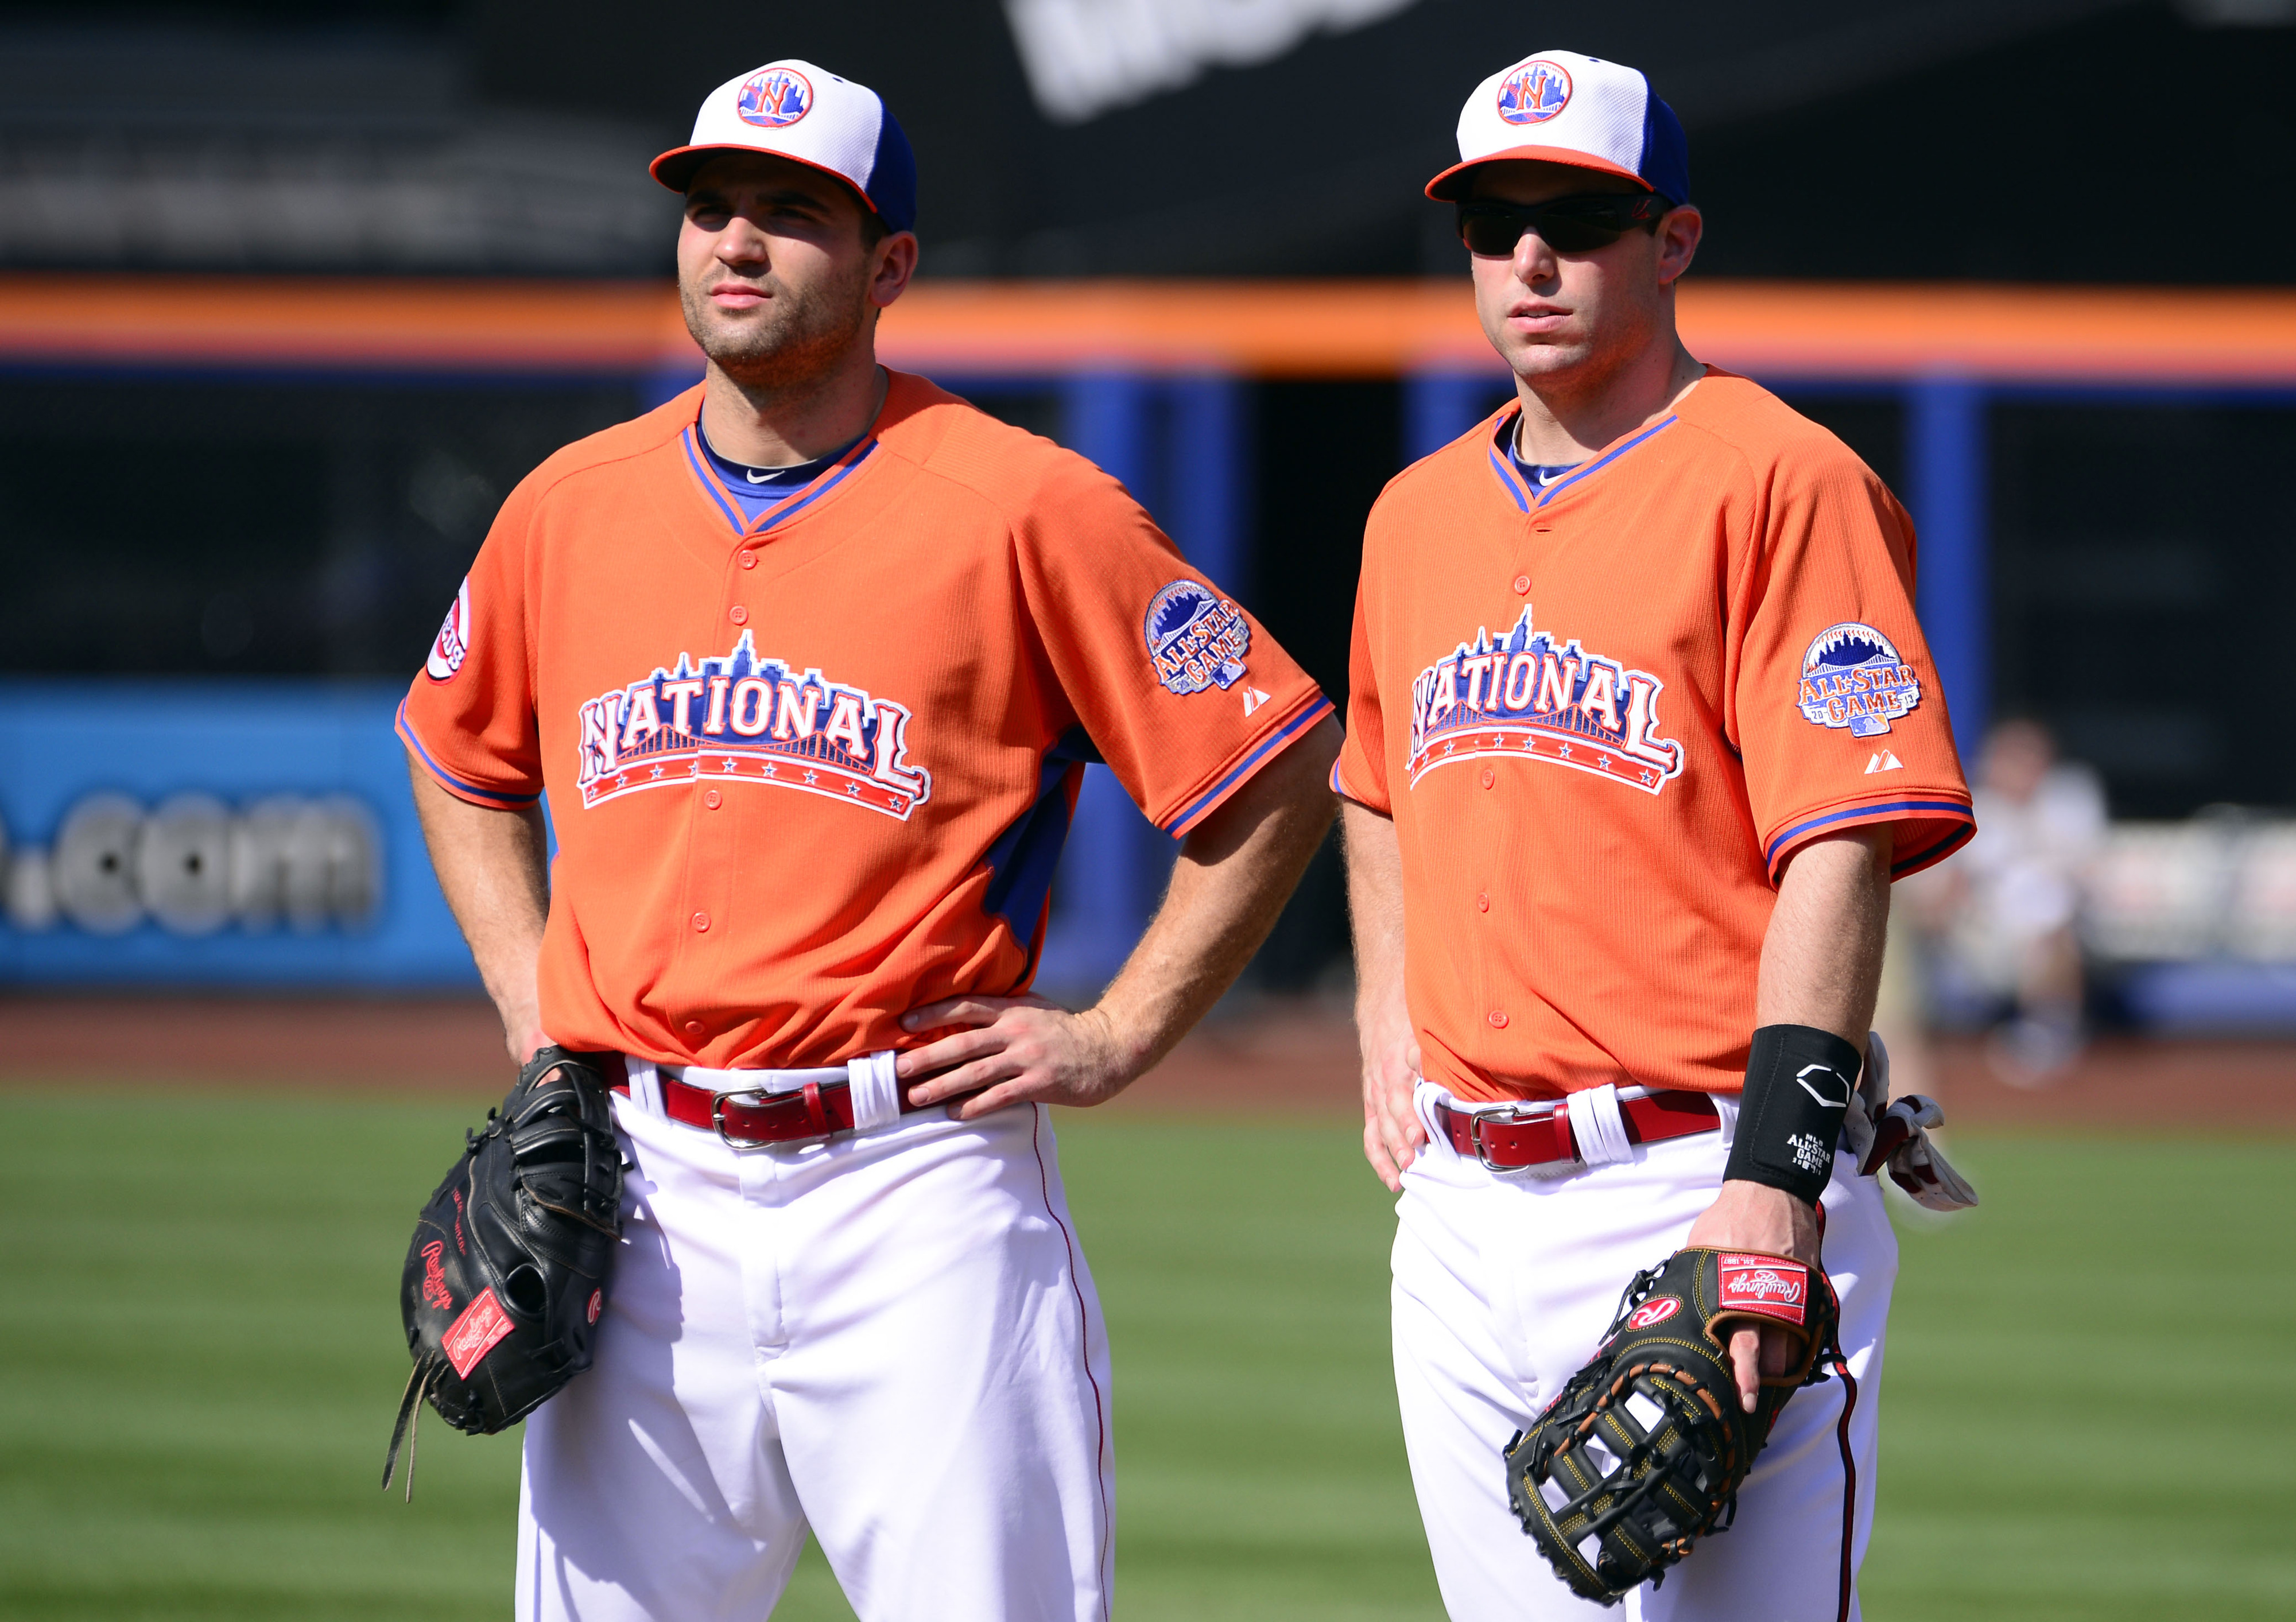 The best first-baseman in the National League. The other guy is Joey Votto.